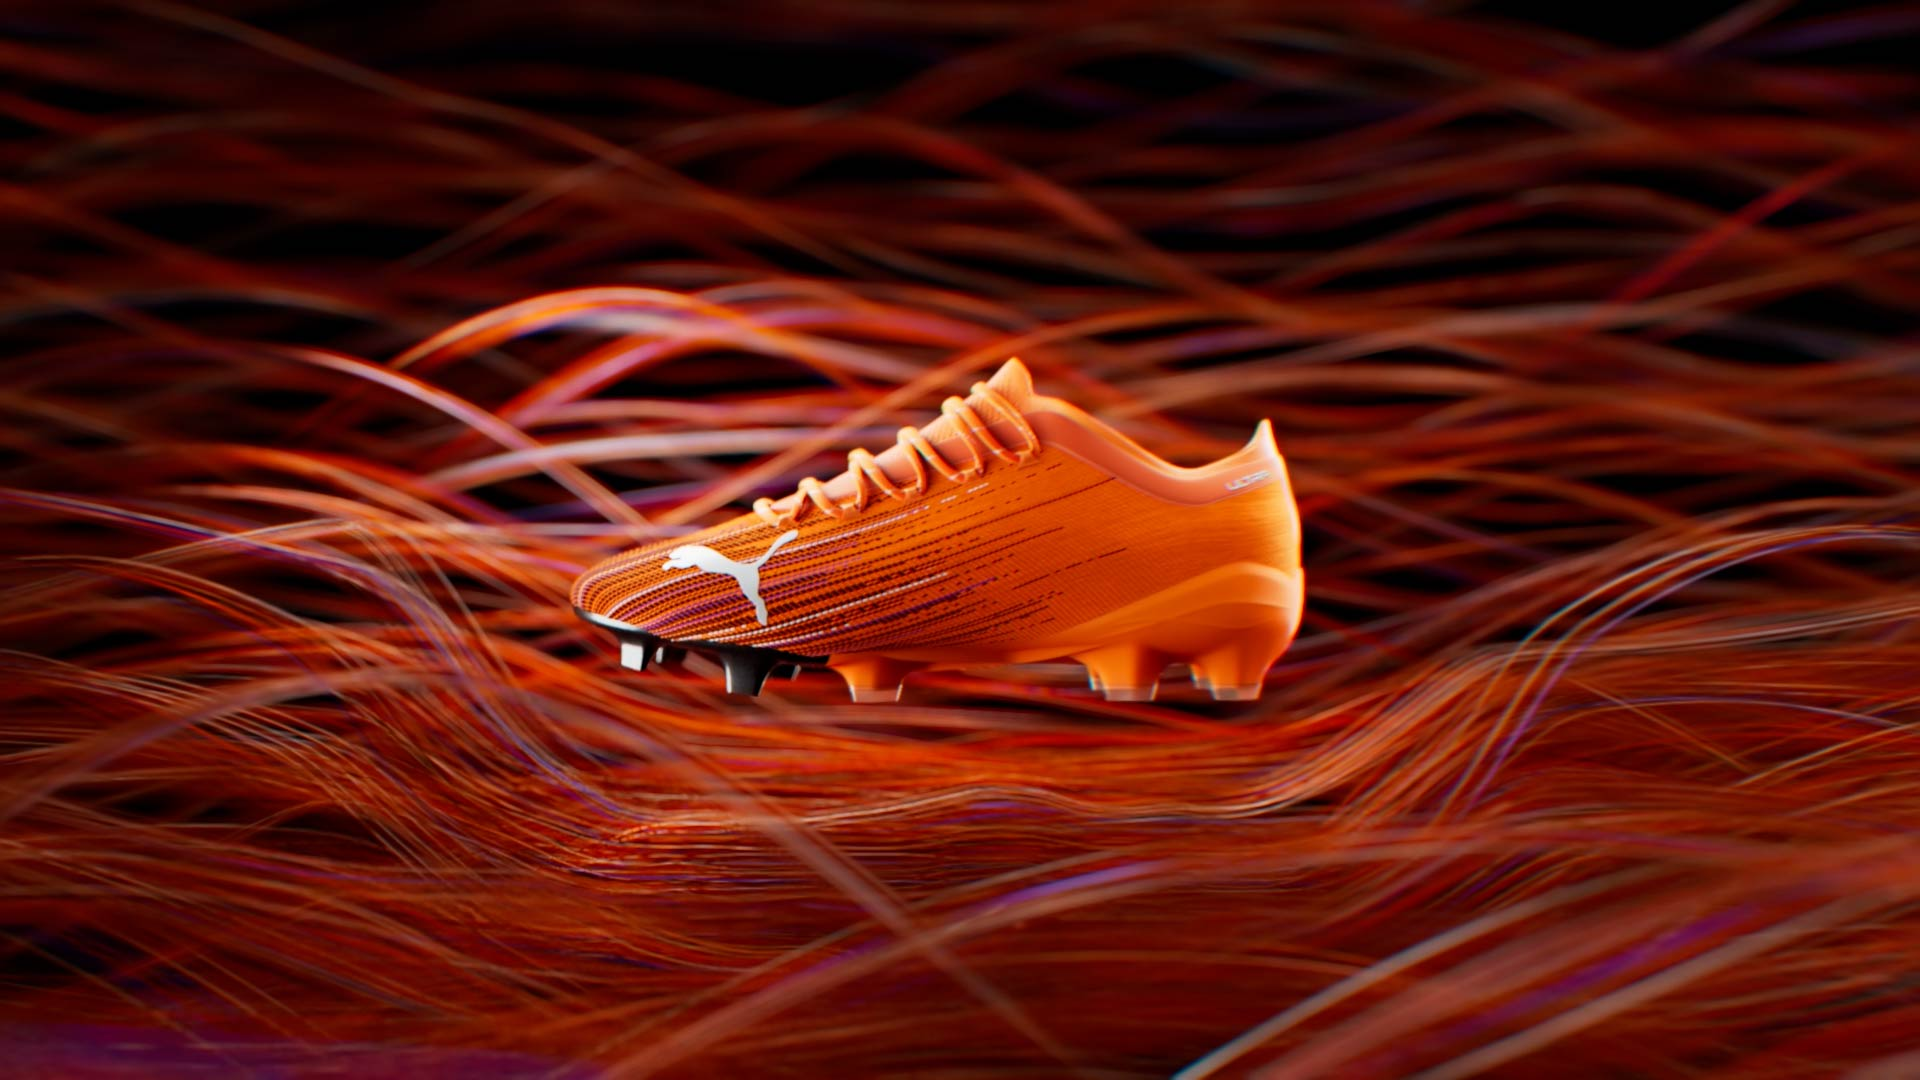 3D Puma Ultra soccer shoe with abstract wires in the background